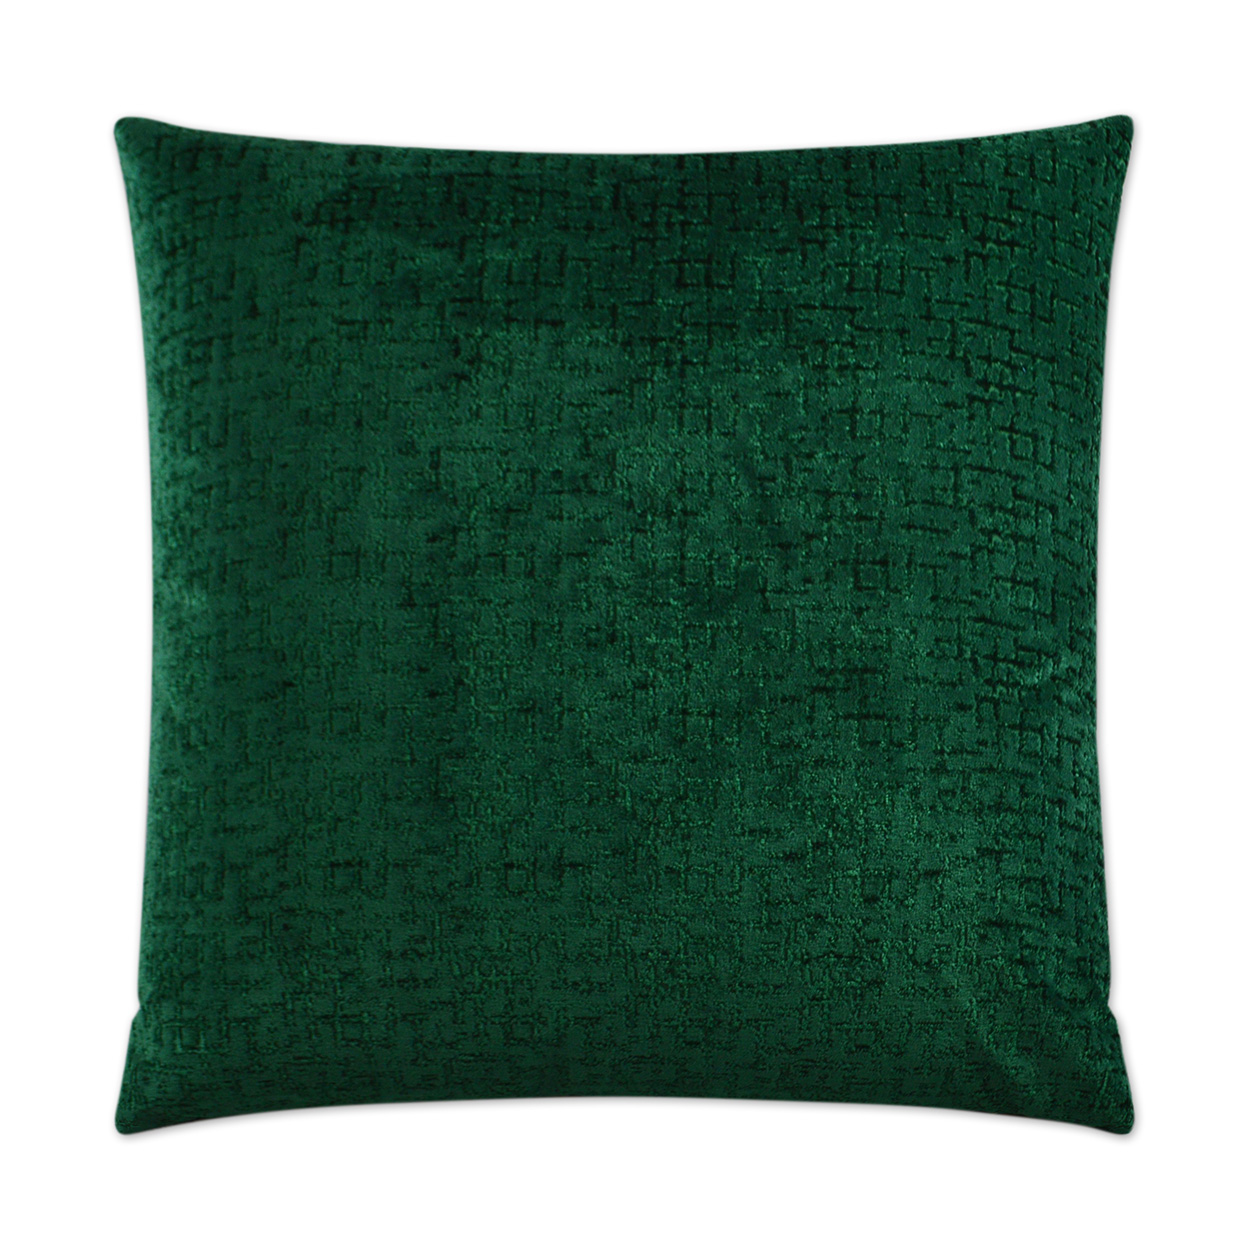 24-x-24-Tetris-Emerald-Pillow_6554A.jpg